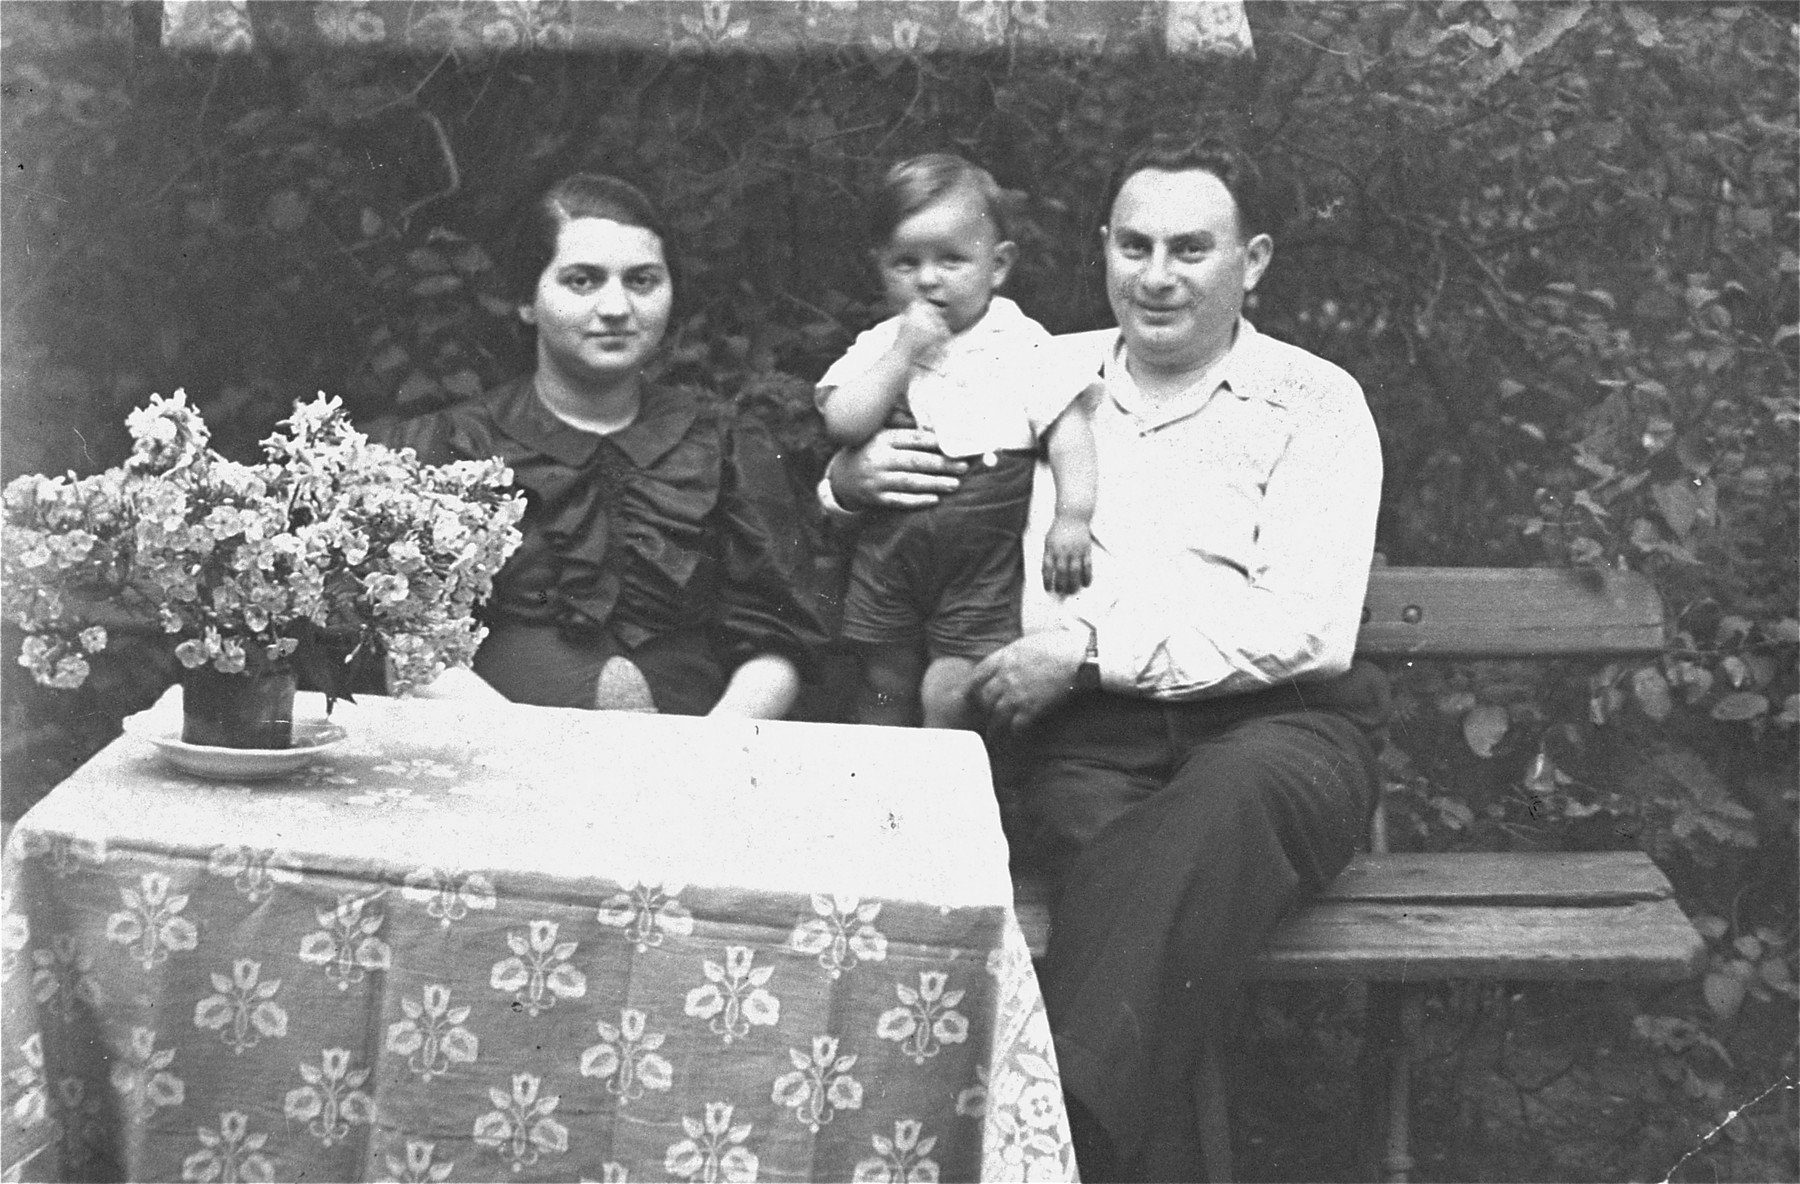 A Jewish couple sits outside with their son in Plonsk, Poland.  Pictured are Irena and Zygmunt Fuks with their son Mietek.    The donor is the niece of Zygmunt and Irena Fuks.  Zygmunt perished in a concentration camp in 1943; Mietek was reportedly buried alive in 1943; the fate of Irena is unknown.